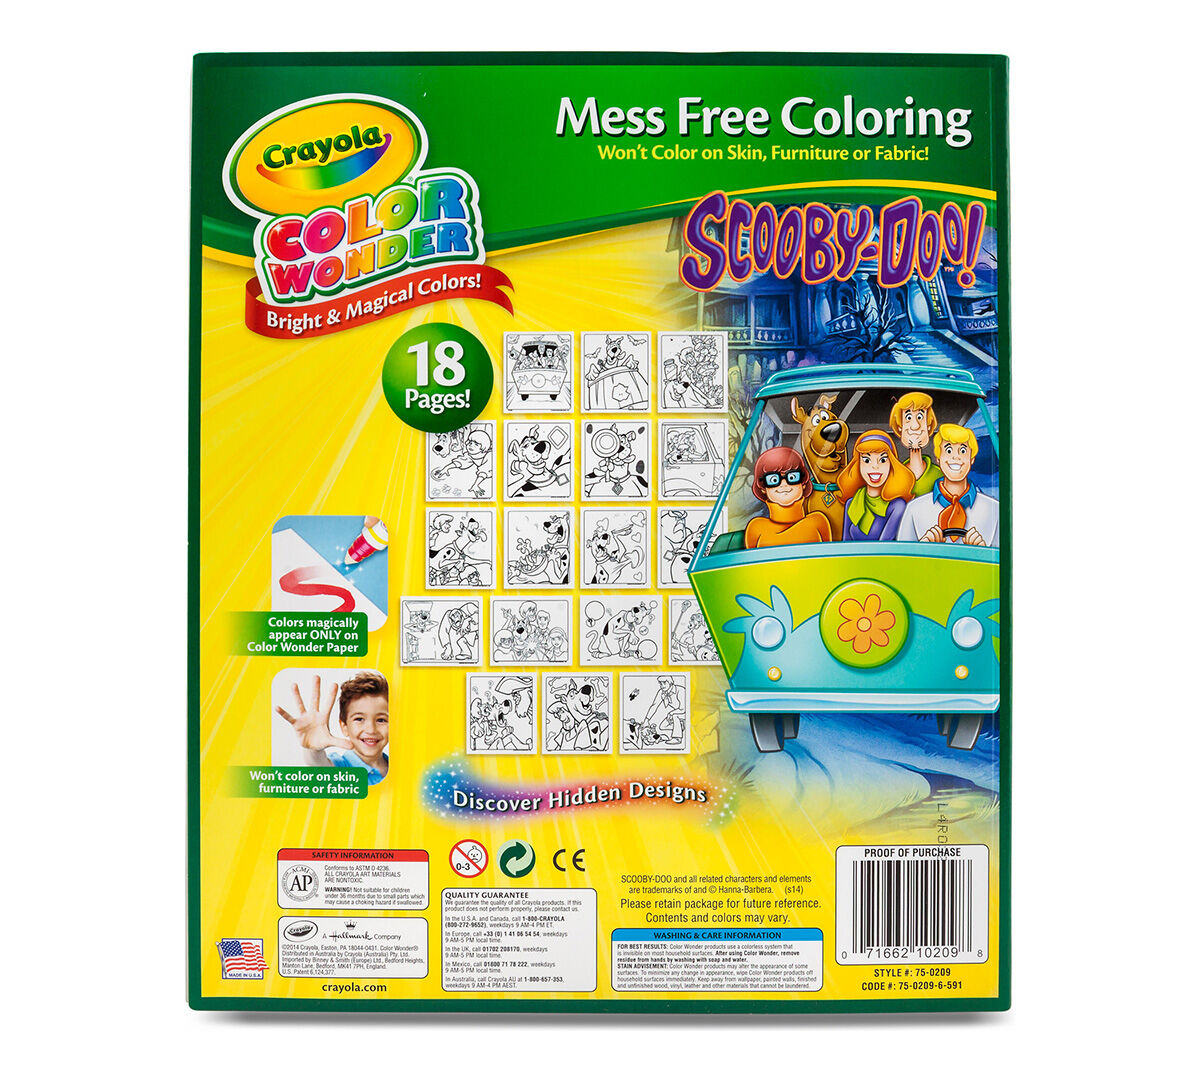 color wonder scooby doo 18 page coloring book - Color Wonder Coloring Books